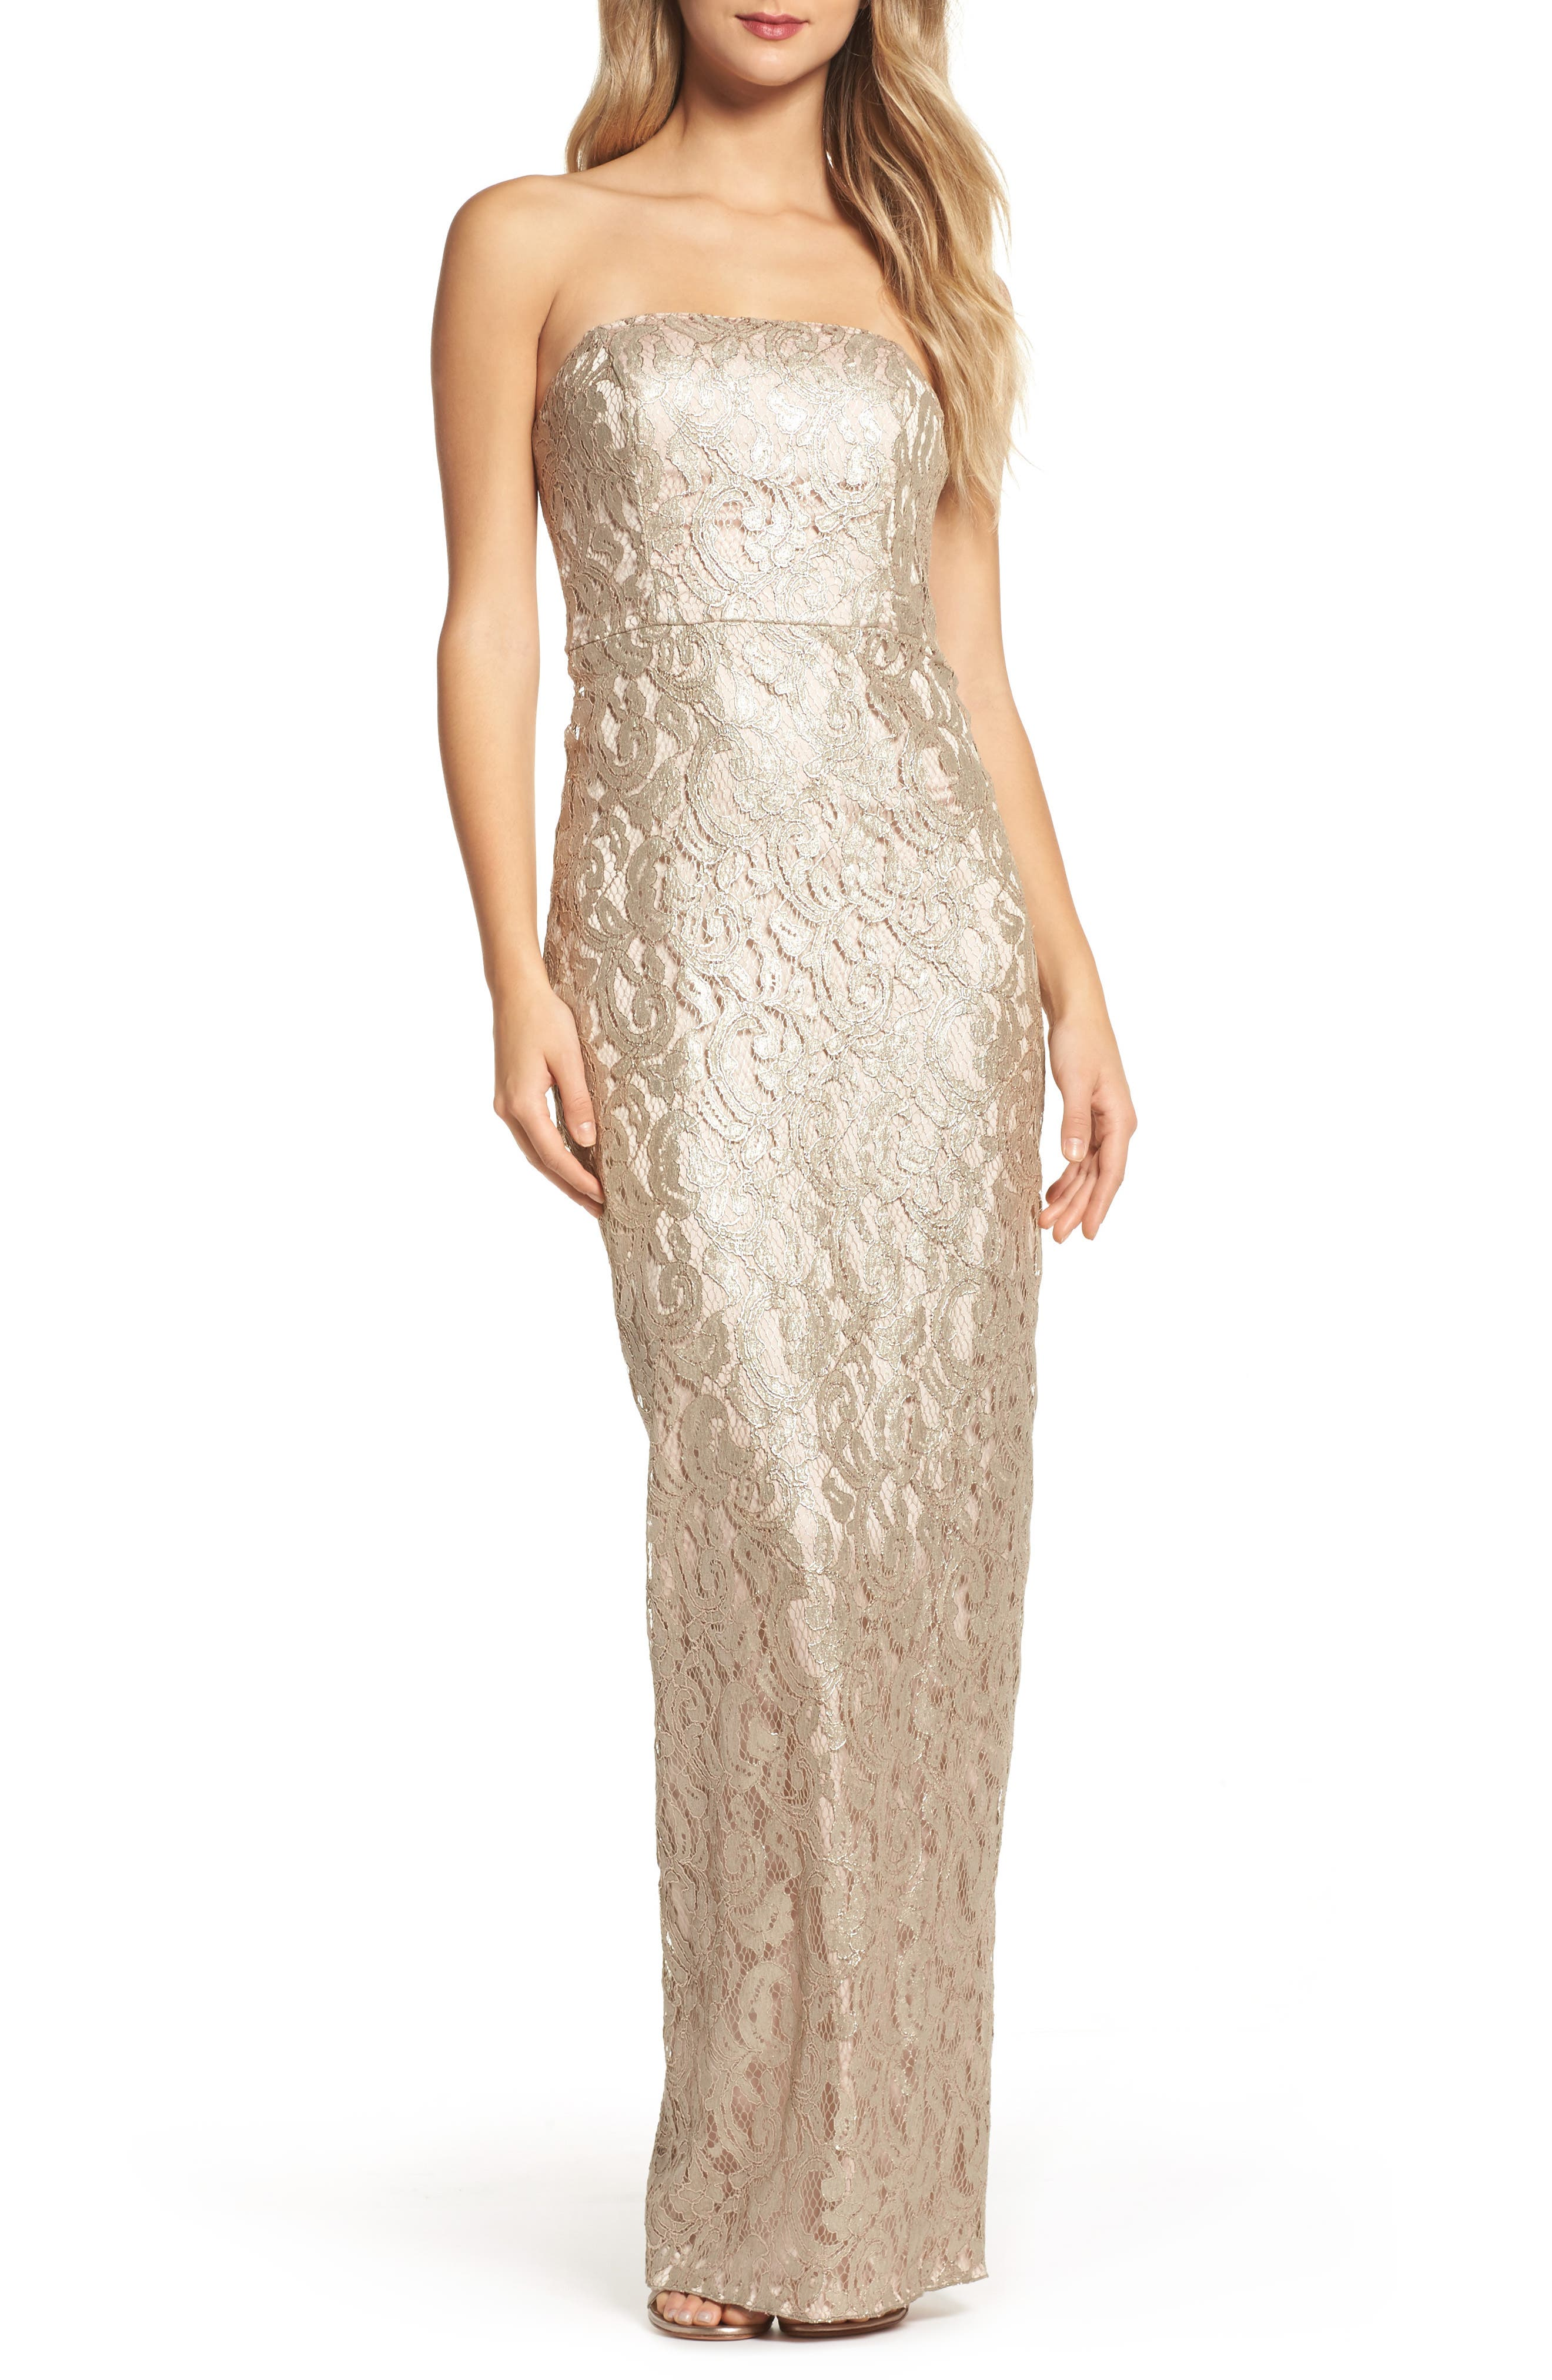 Maria Bianca Nero Starla Ruffle Back Strapless Lace Gown